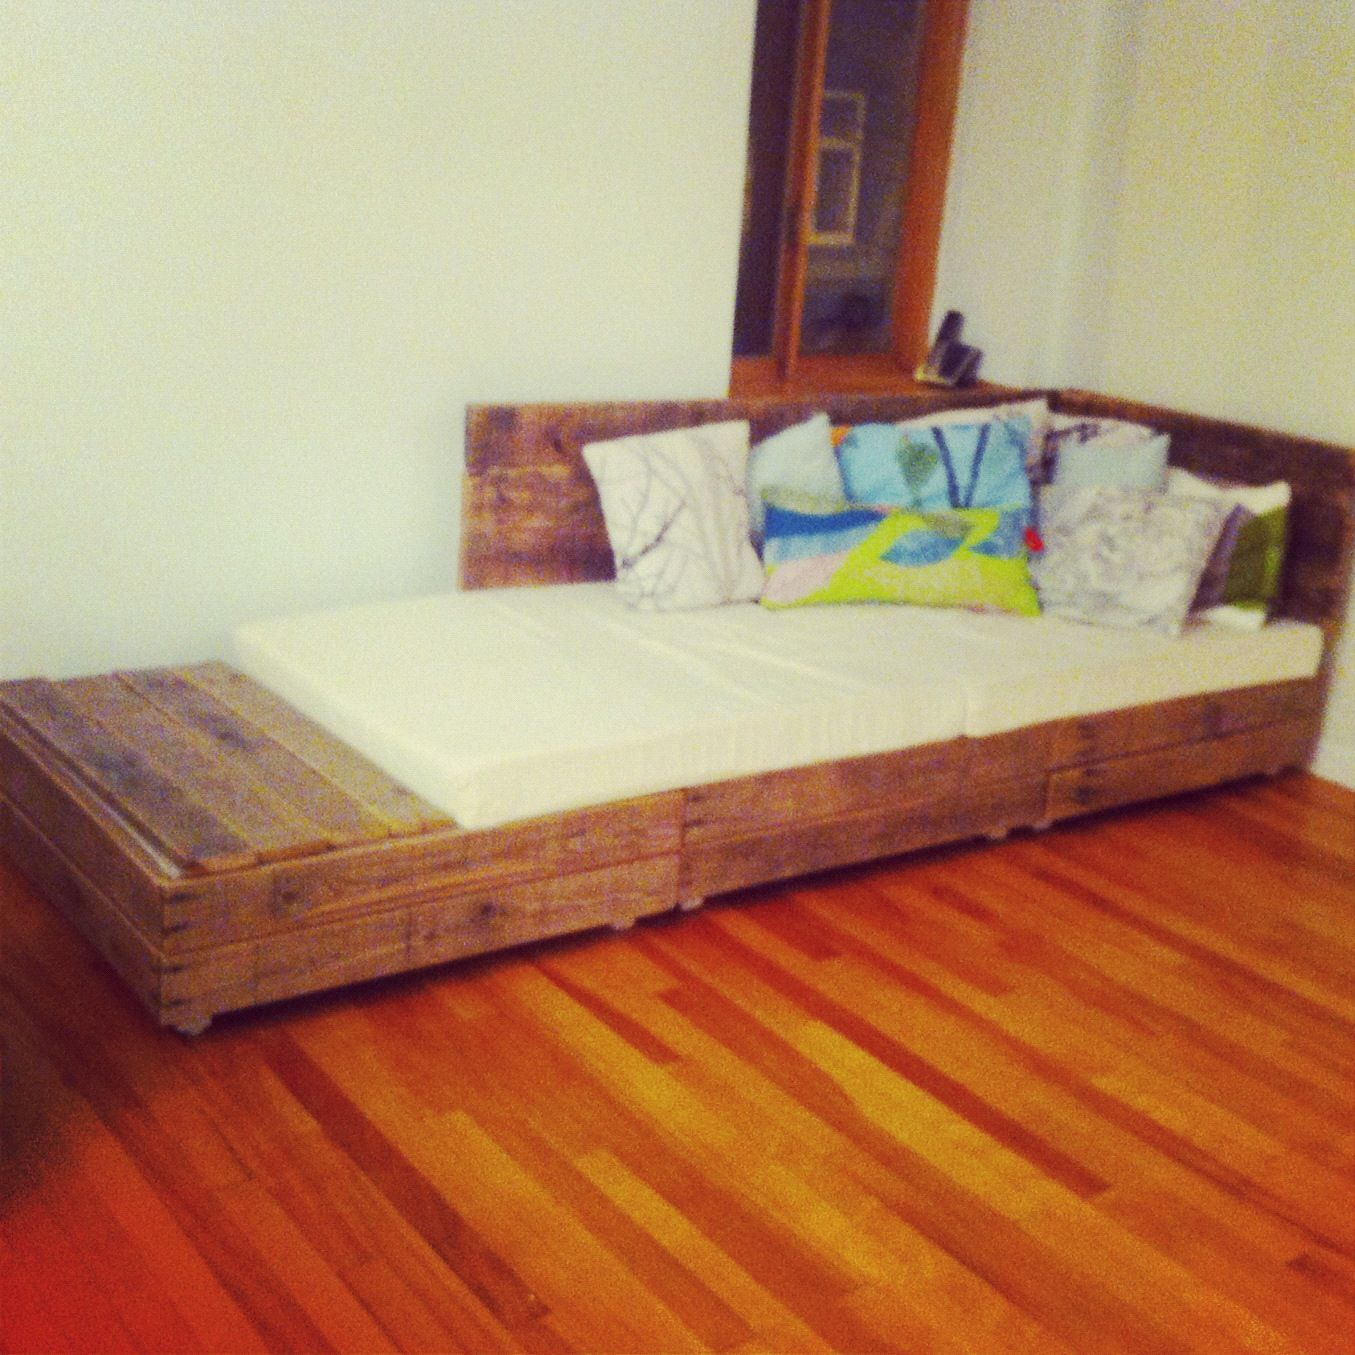 diy pallet couch sofa bed upcycled salvaged wood pallets